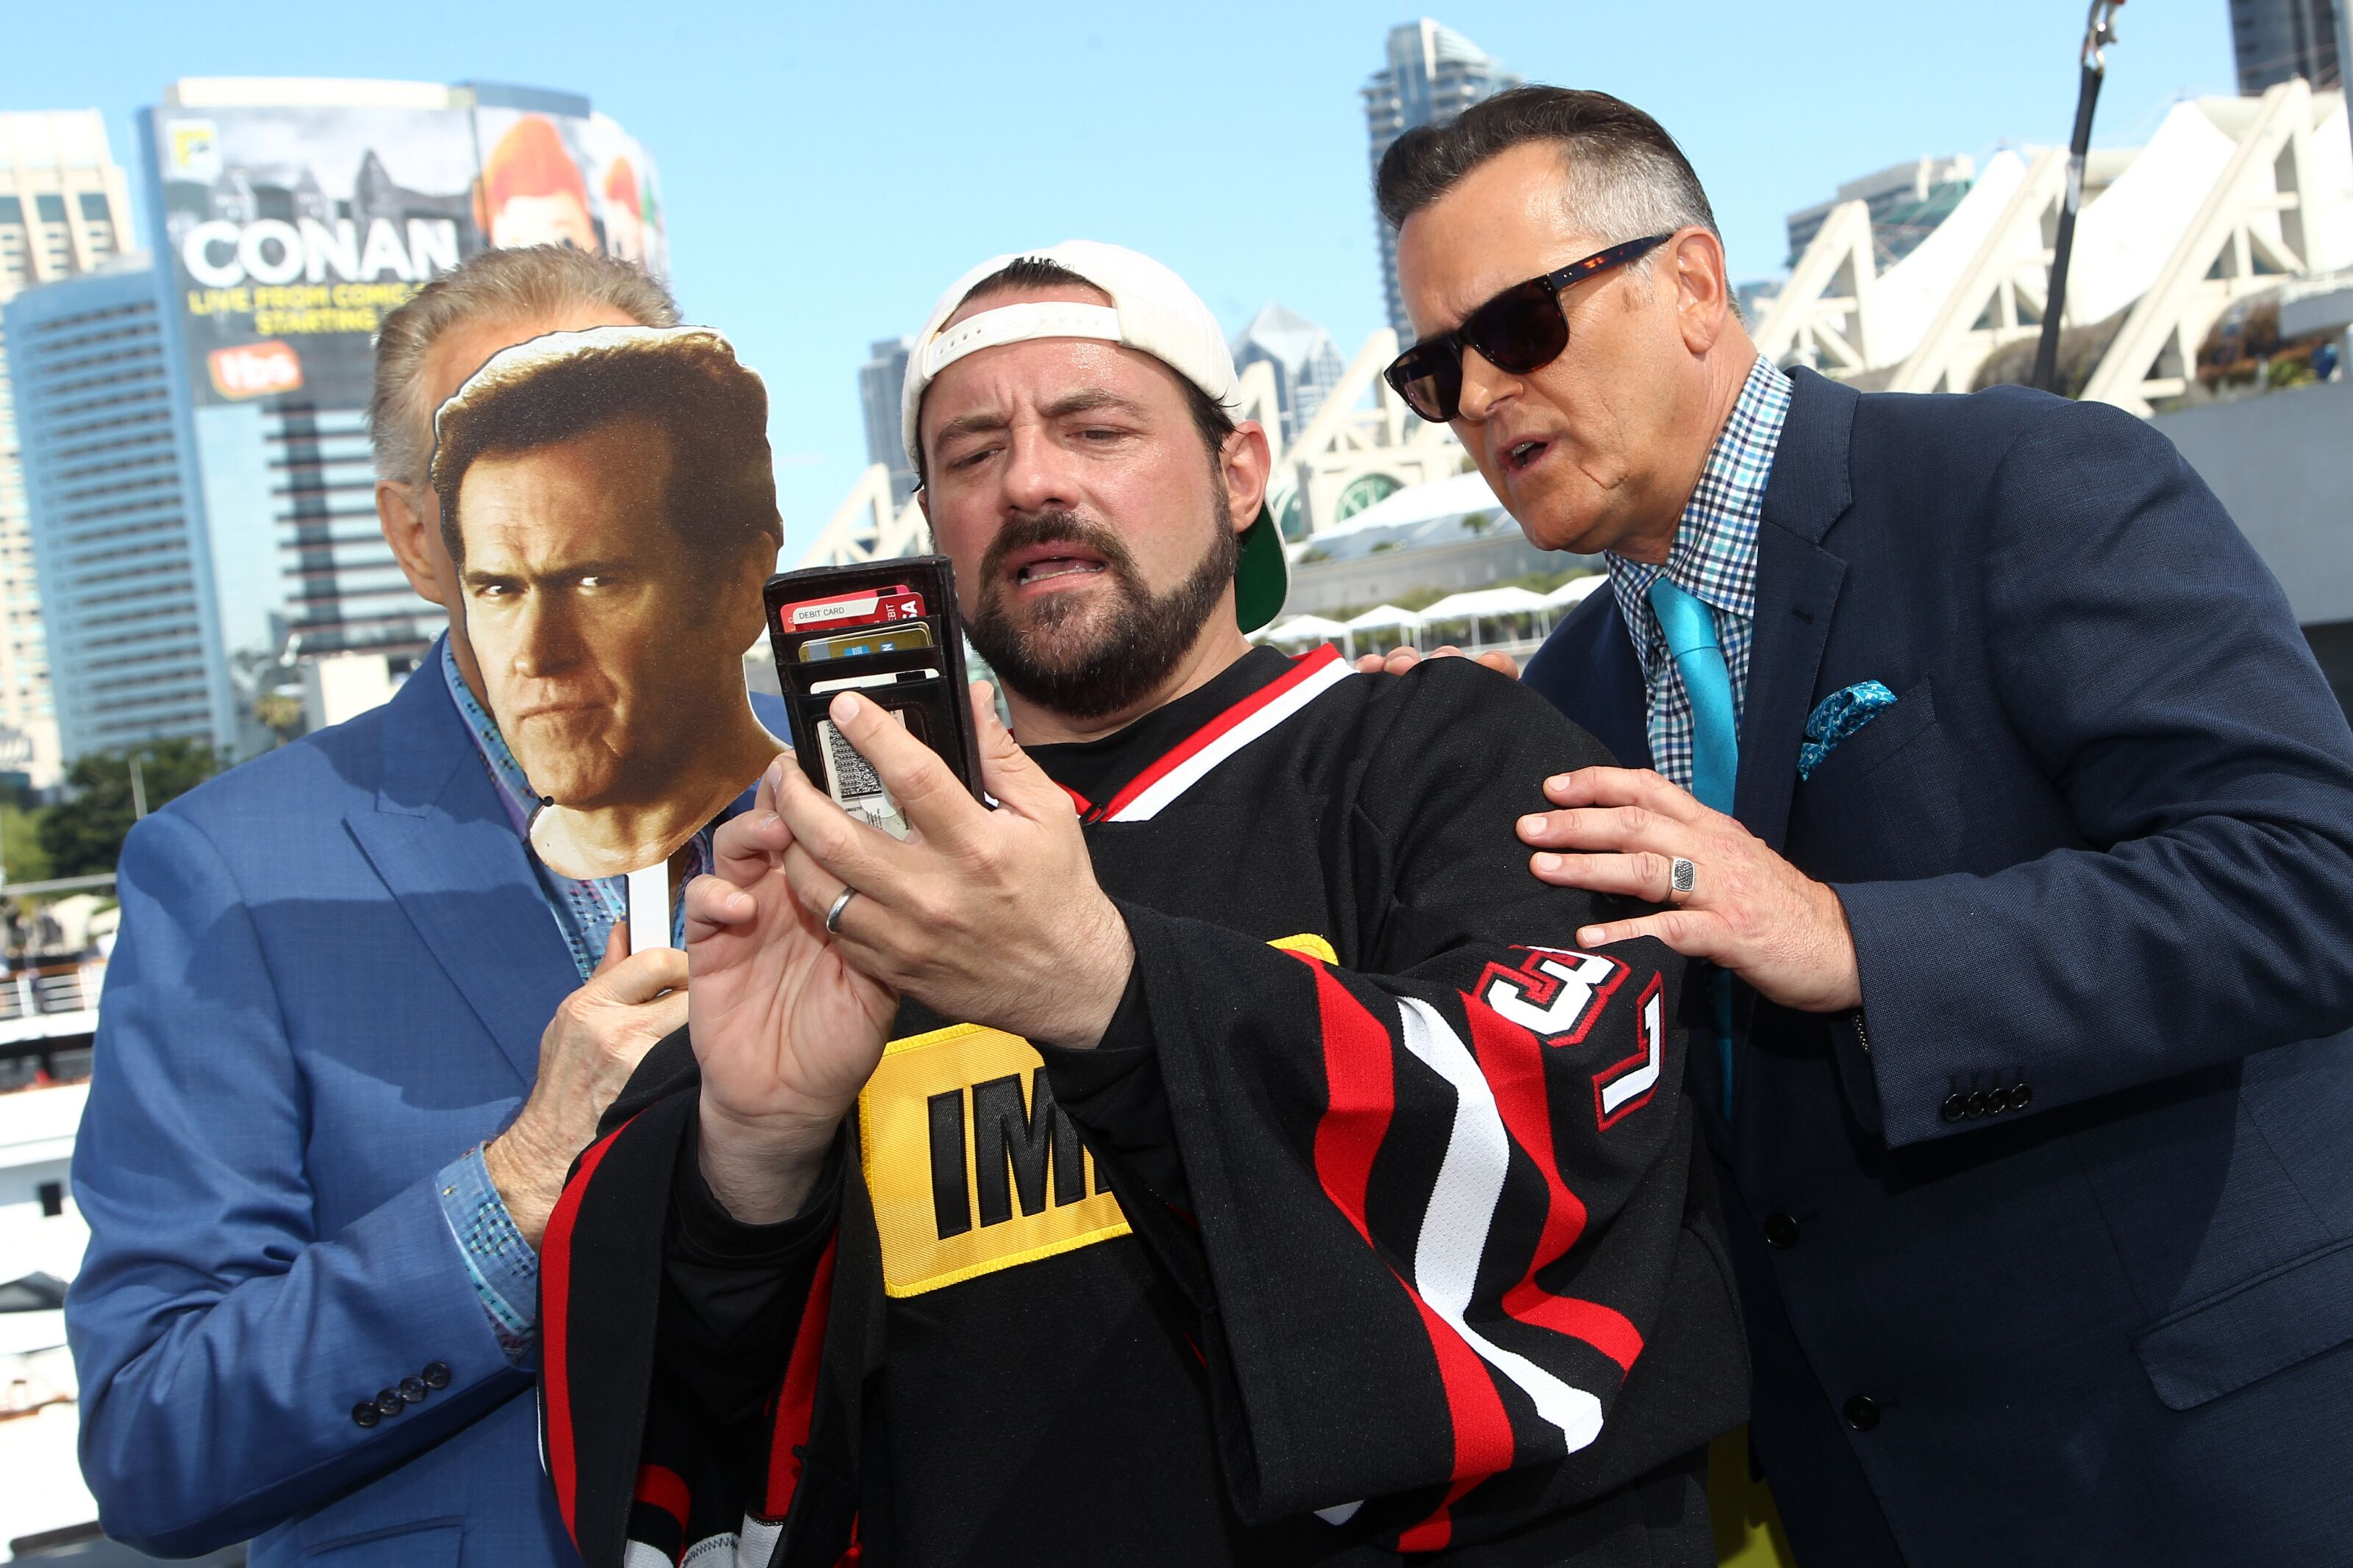 Bruce Campbell goes to the mall with Kevin Smith in Mallrats 2?